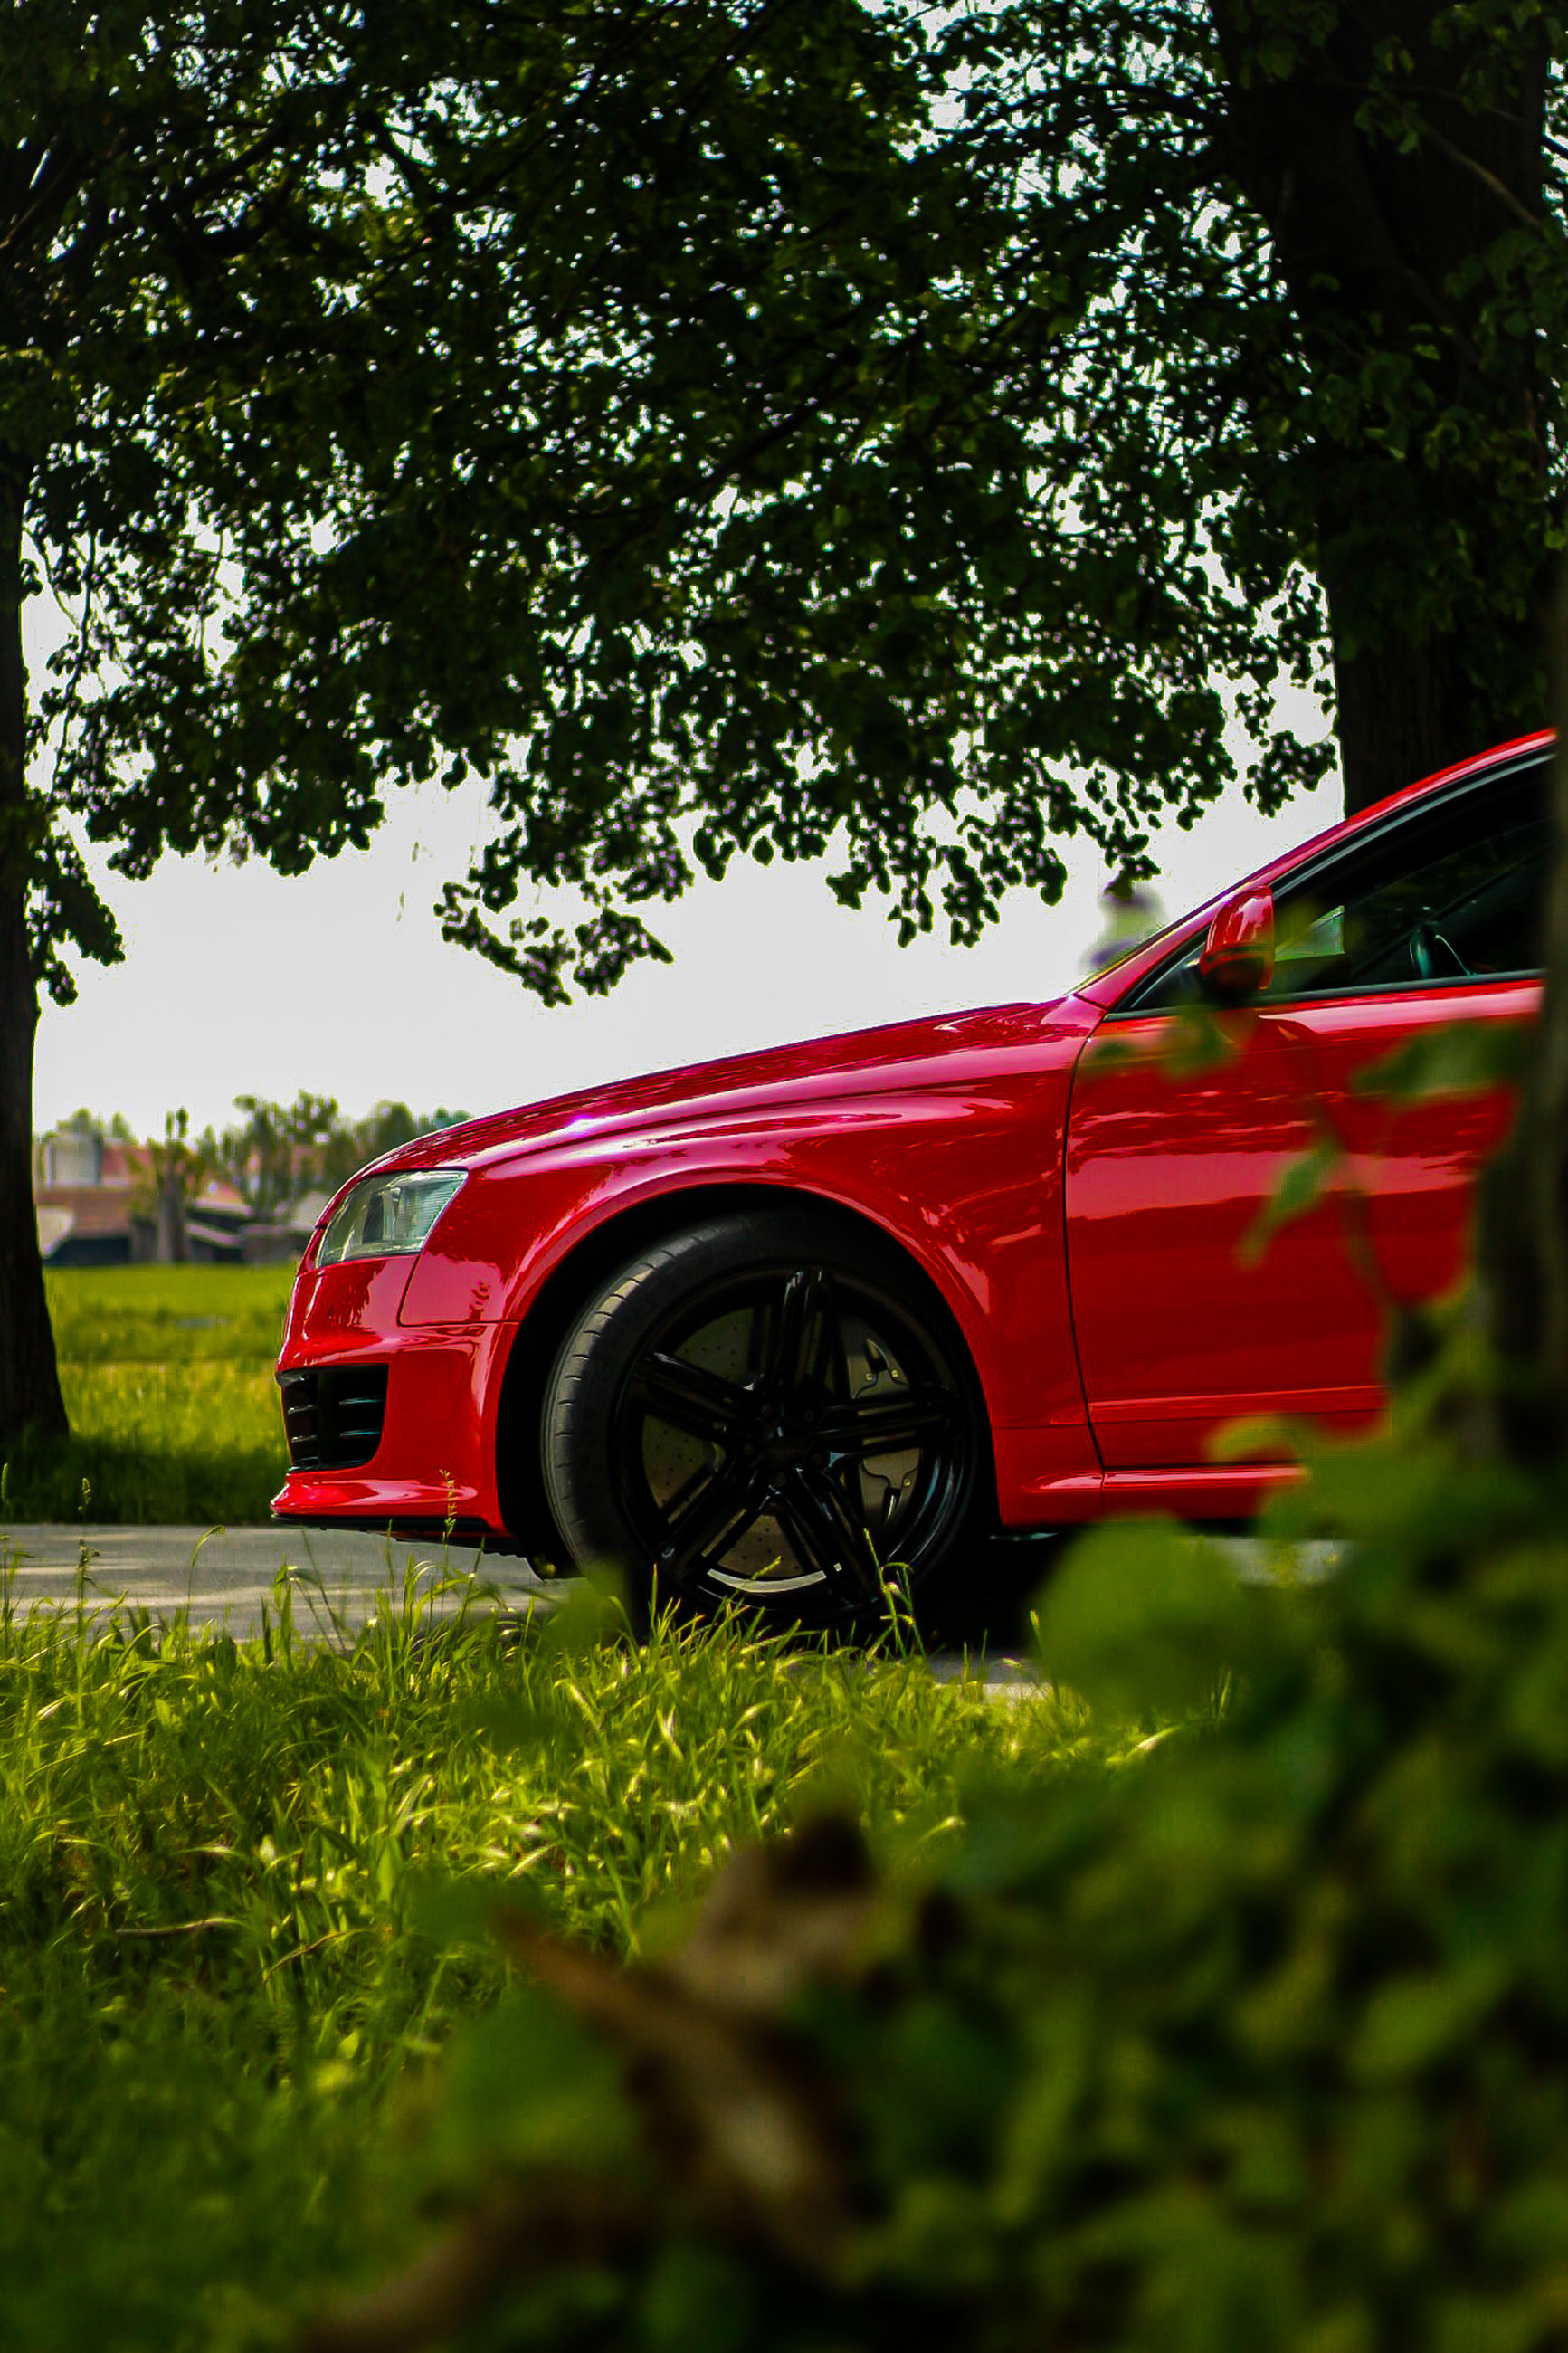 mode of transportation, car, red, plant, motor vehicle, transportation, tree, land vehicle, grass, nature, green color, day, selective focus, land, field, outdoors, no people, growth, sky, wheel